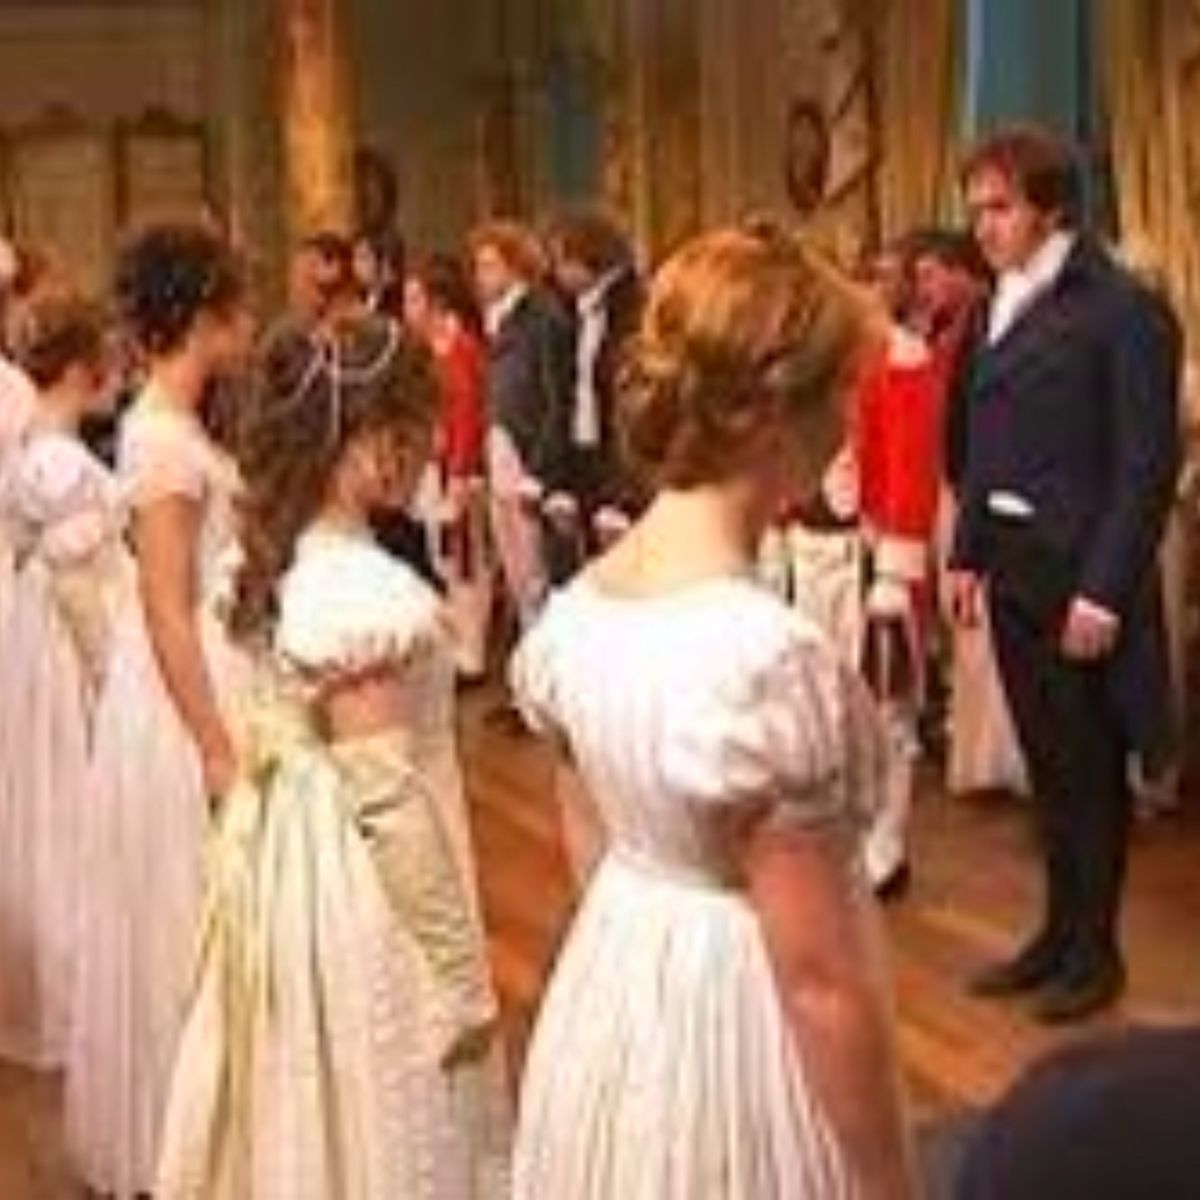 Dressing For The Netherfield Ball In Pride And Prejudice Regency Fashion Jane Aus Orgullo Y Prejuicio Orgullo Y Prejuicio Pelicula Orgullo Y Prejuicio Libro